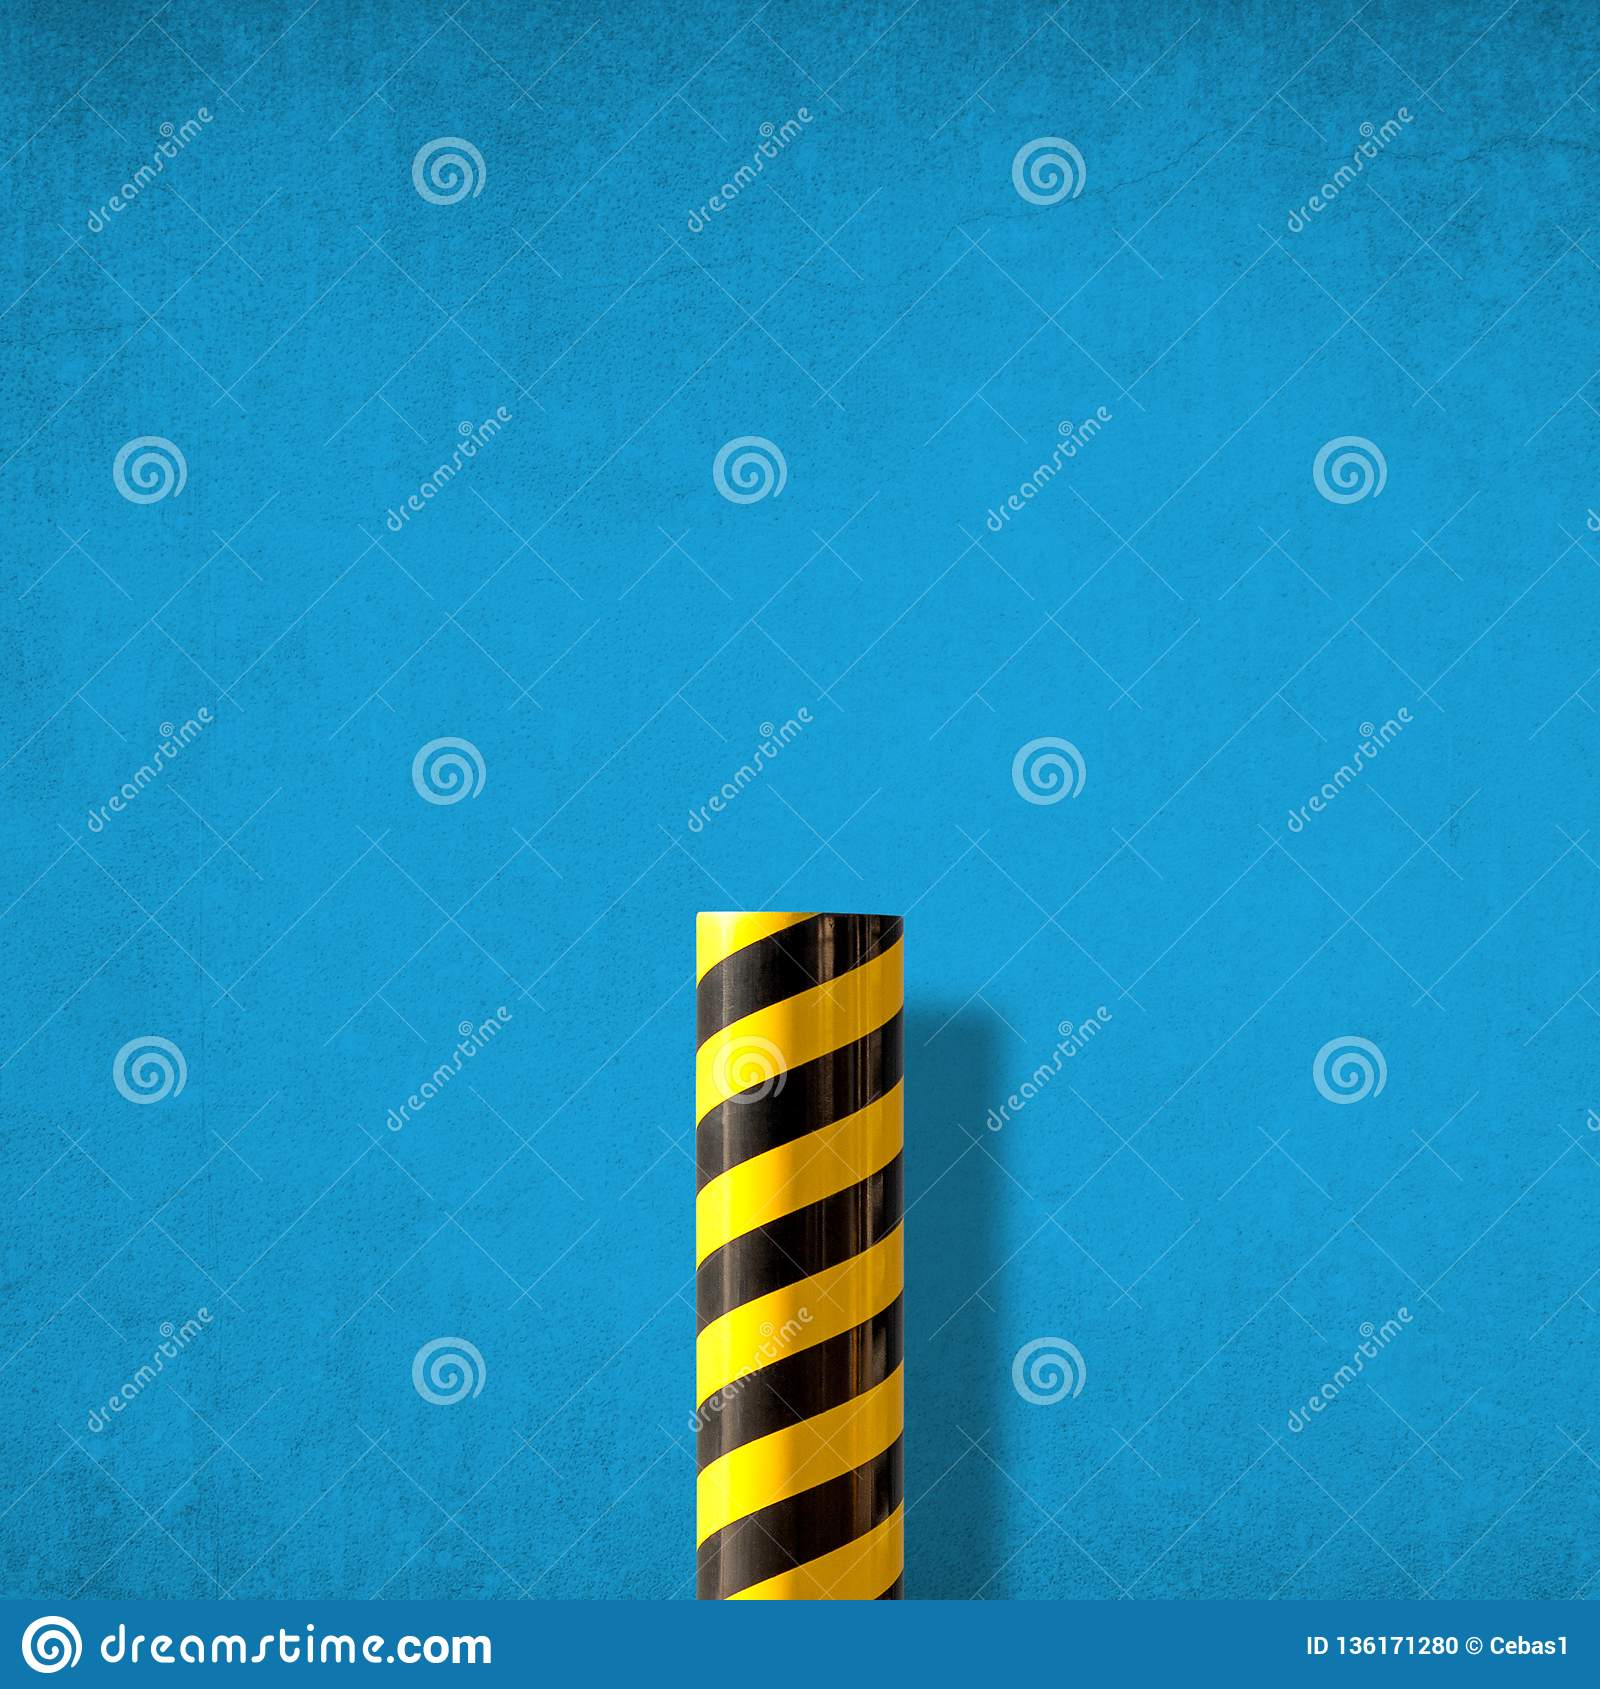 Abstract minimalist picture of road caution sign against blue wall